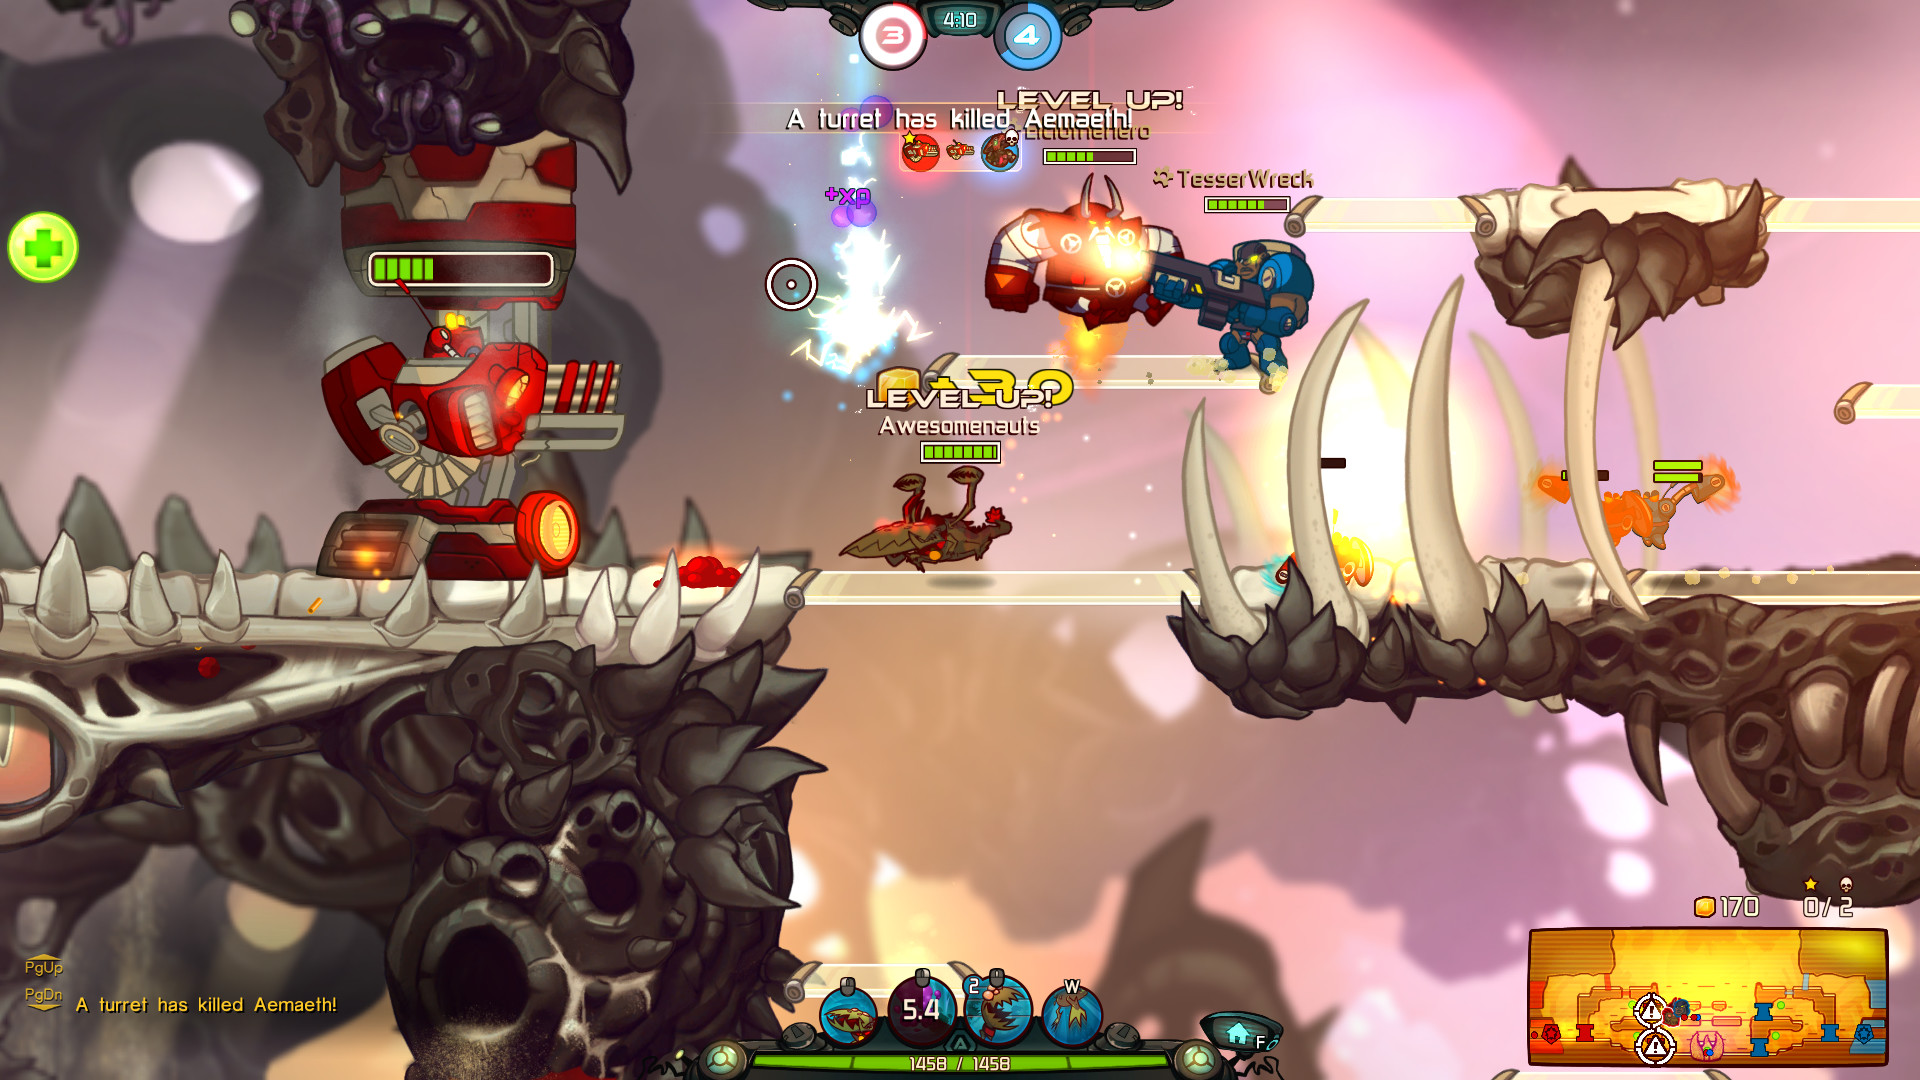 Awesomenauts (Steam Key, Region Free)